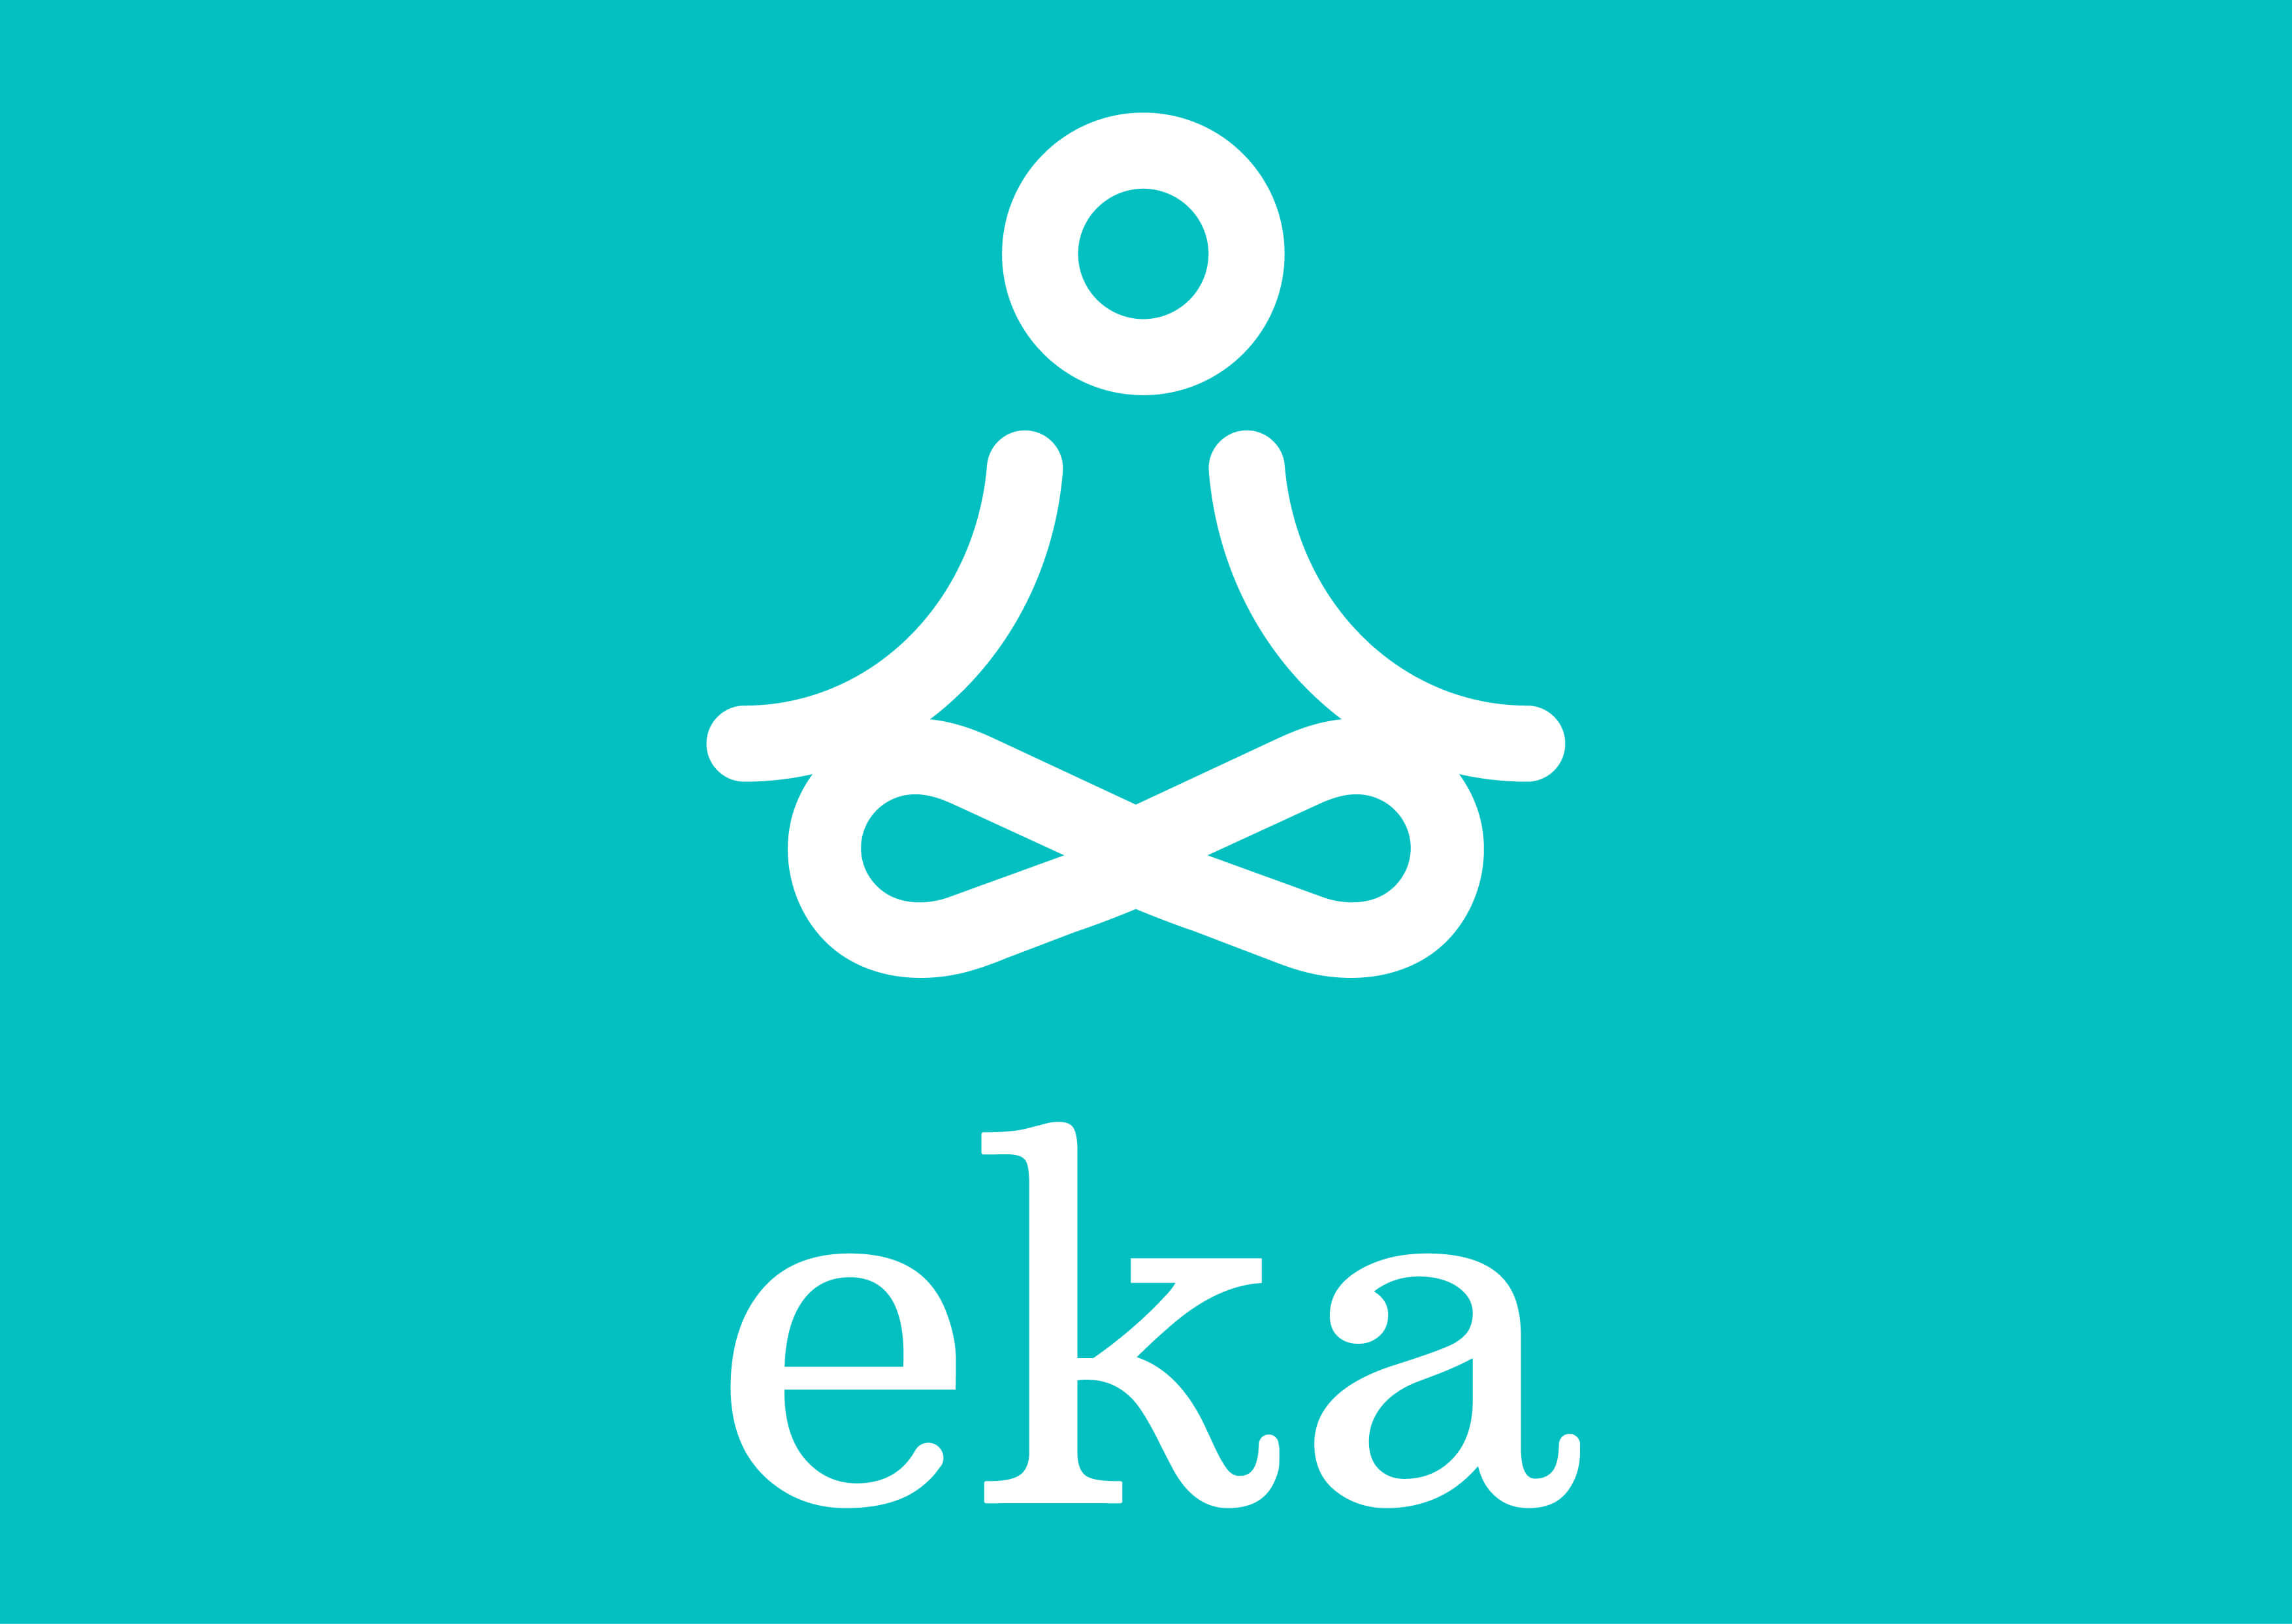 eka meditation - autism - anxiety